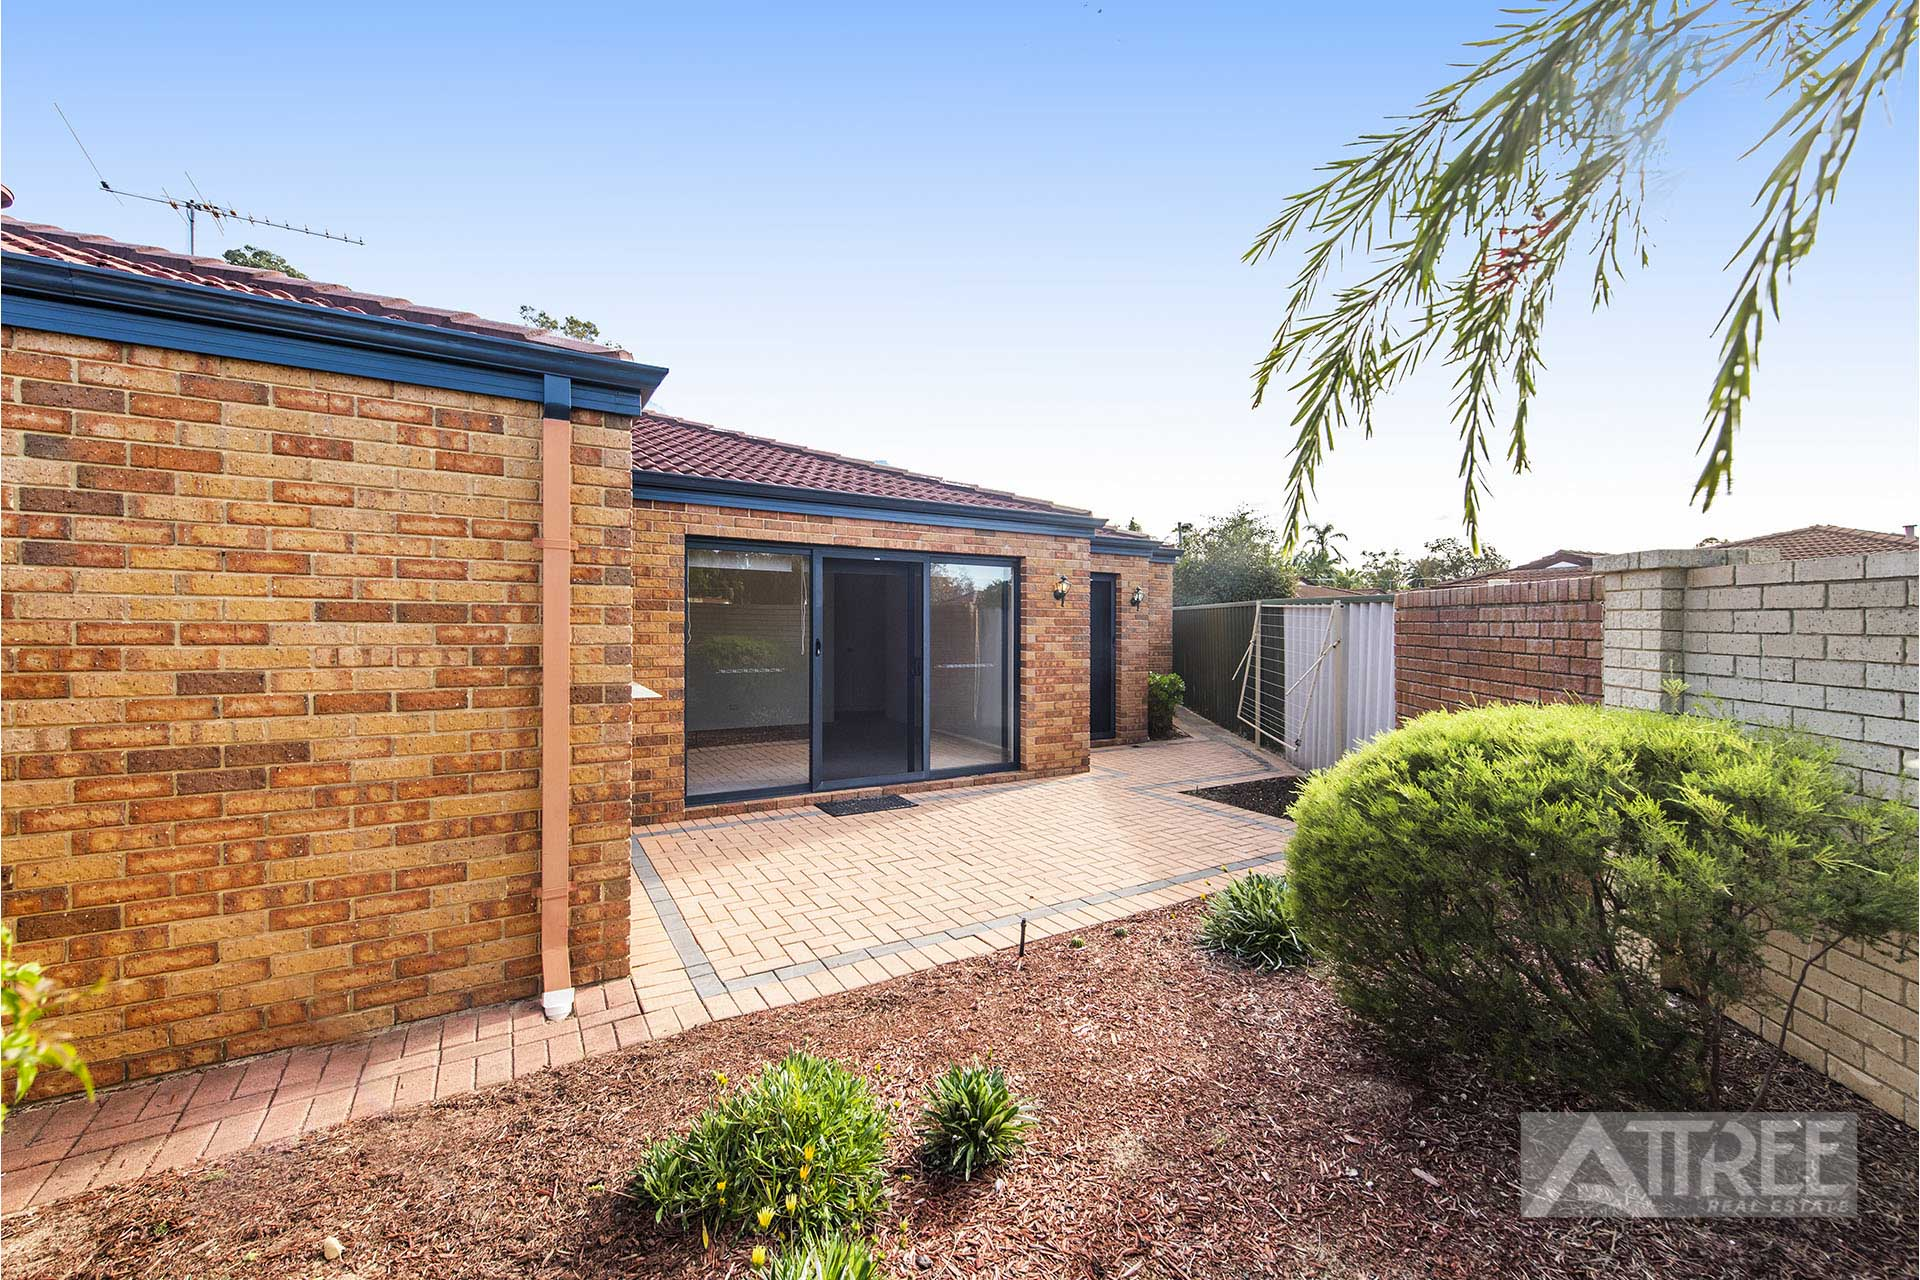 Property for sale in THORNLIE, 1/11 Exmouth Place : Attree Real Estate